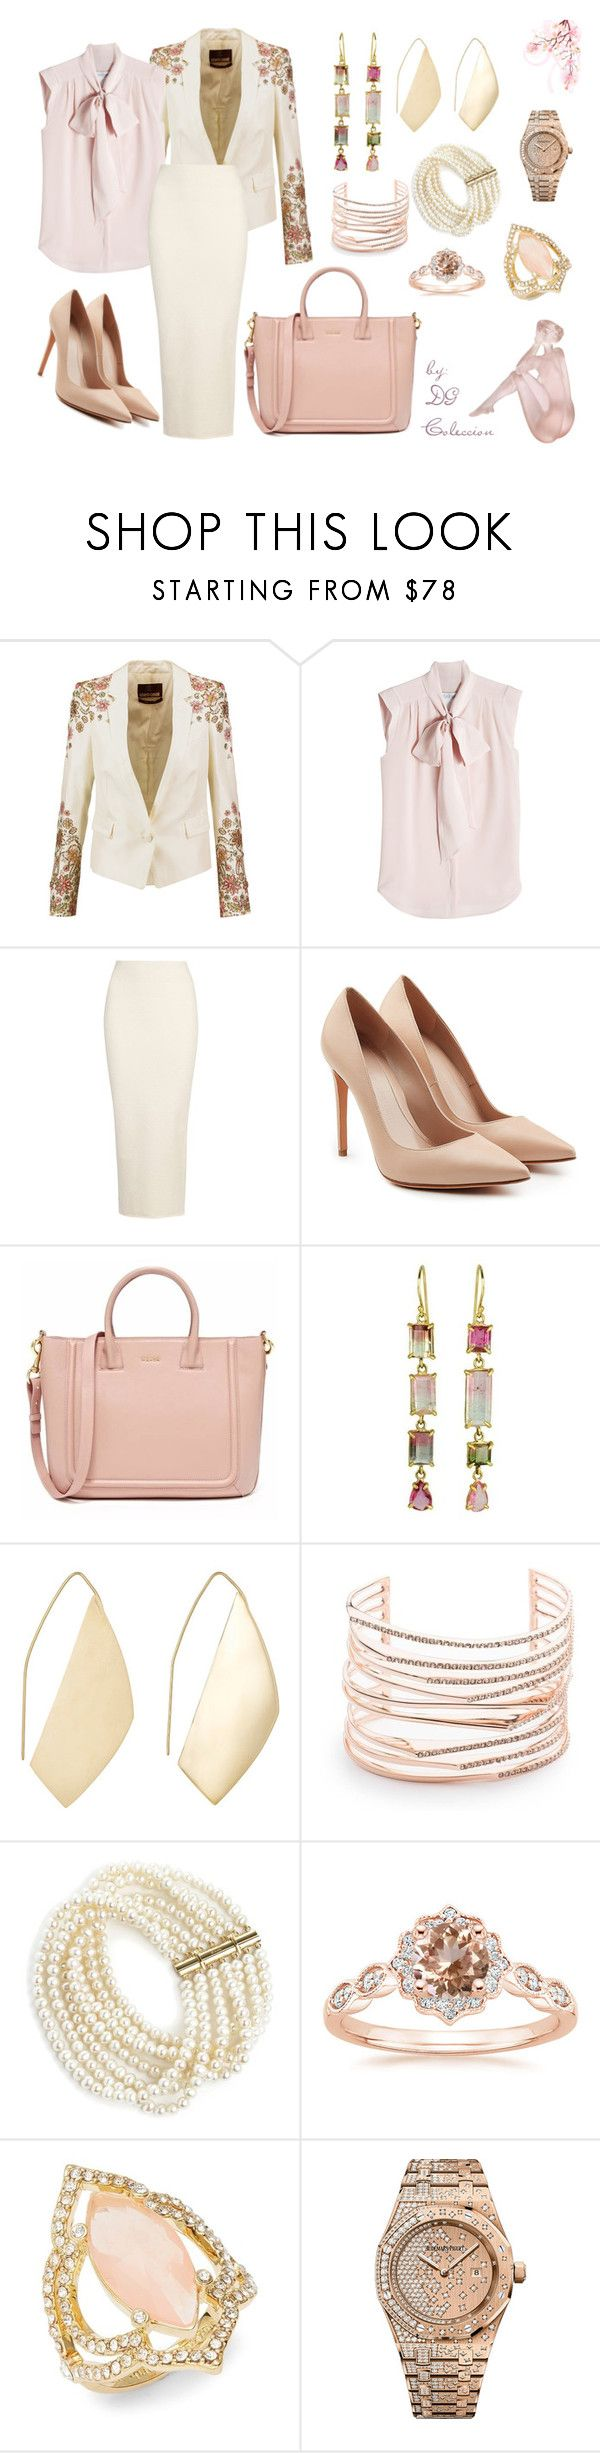 """""""Untitled #234"""" by iamgae on Polyvore featuring Roberto Cavalli, MaxMara, Yeezy by Kanye West, Alexander McQueen, Ana Khouri, Alexis Bittar, Annoushka, Kate Spade, Audemars Piguet and Daum"""